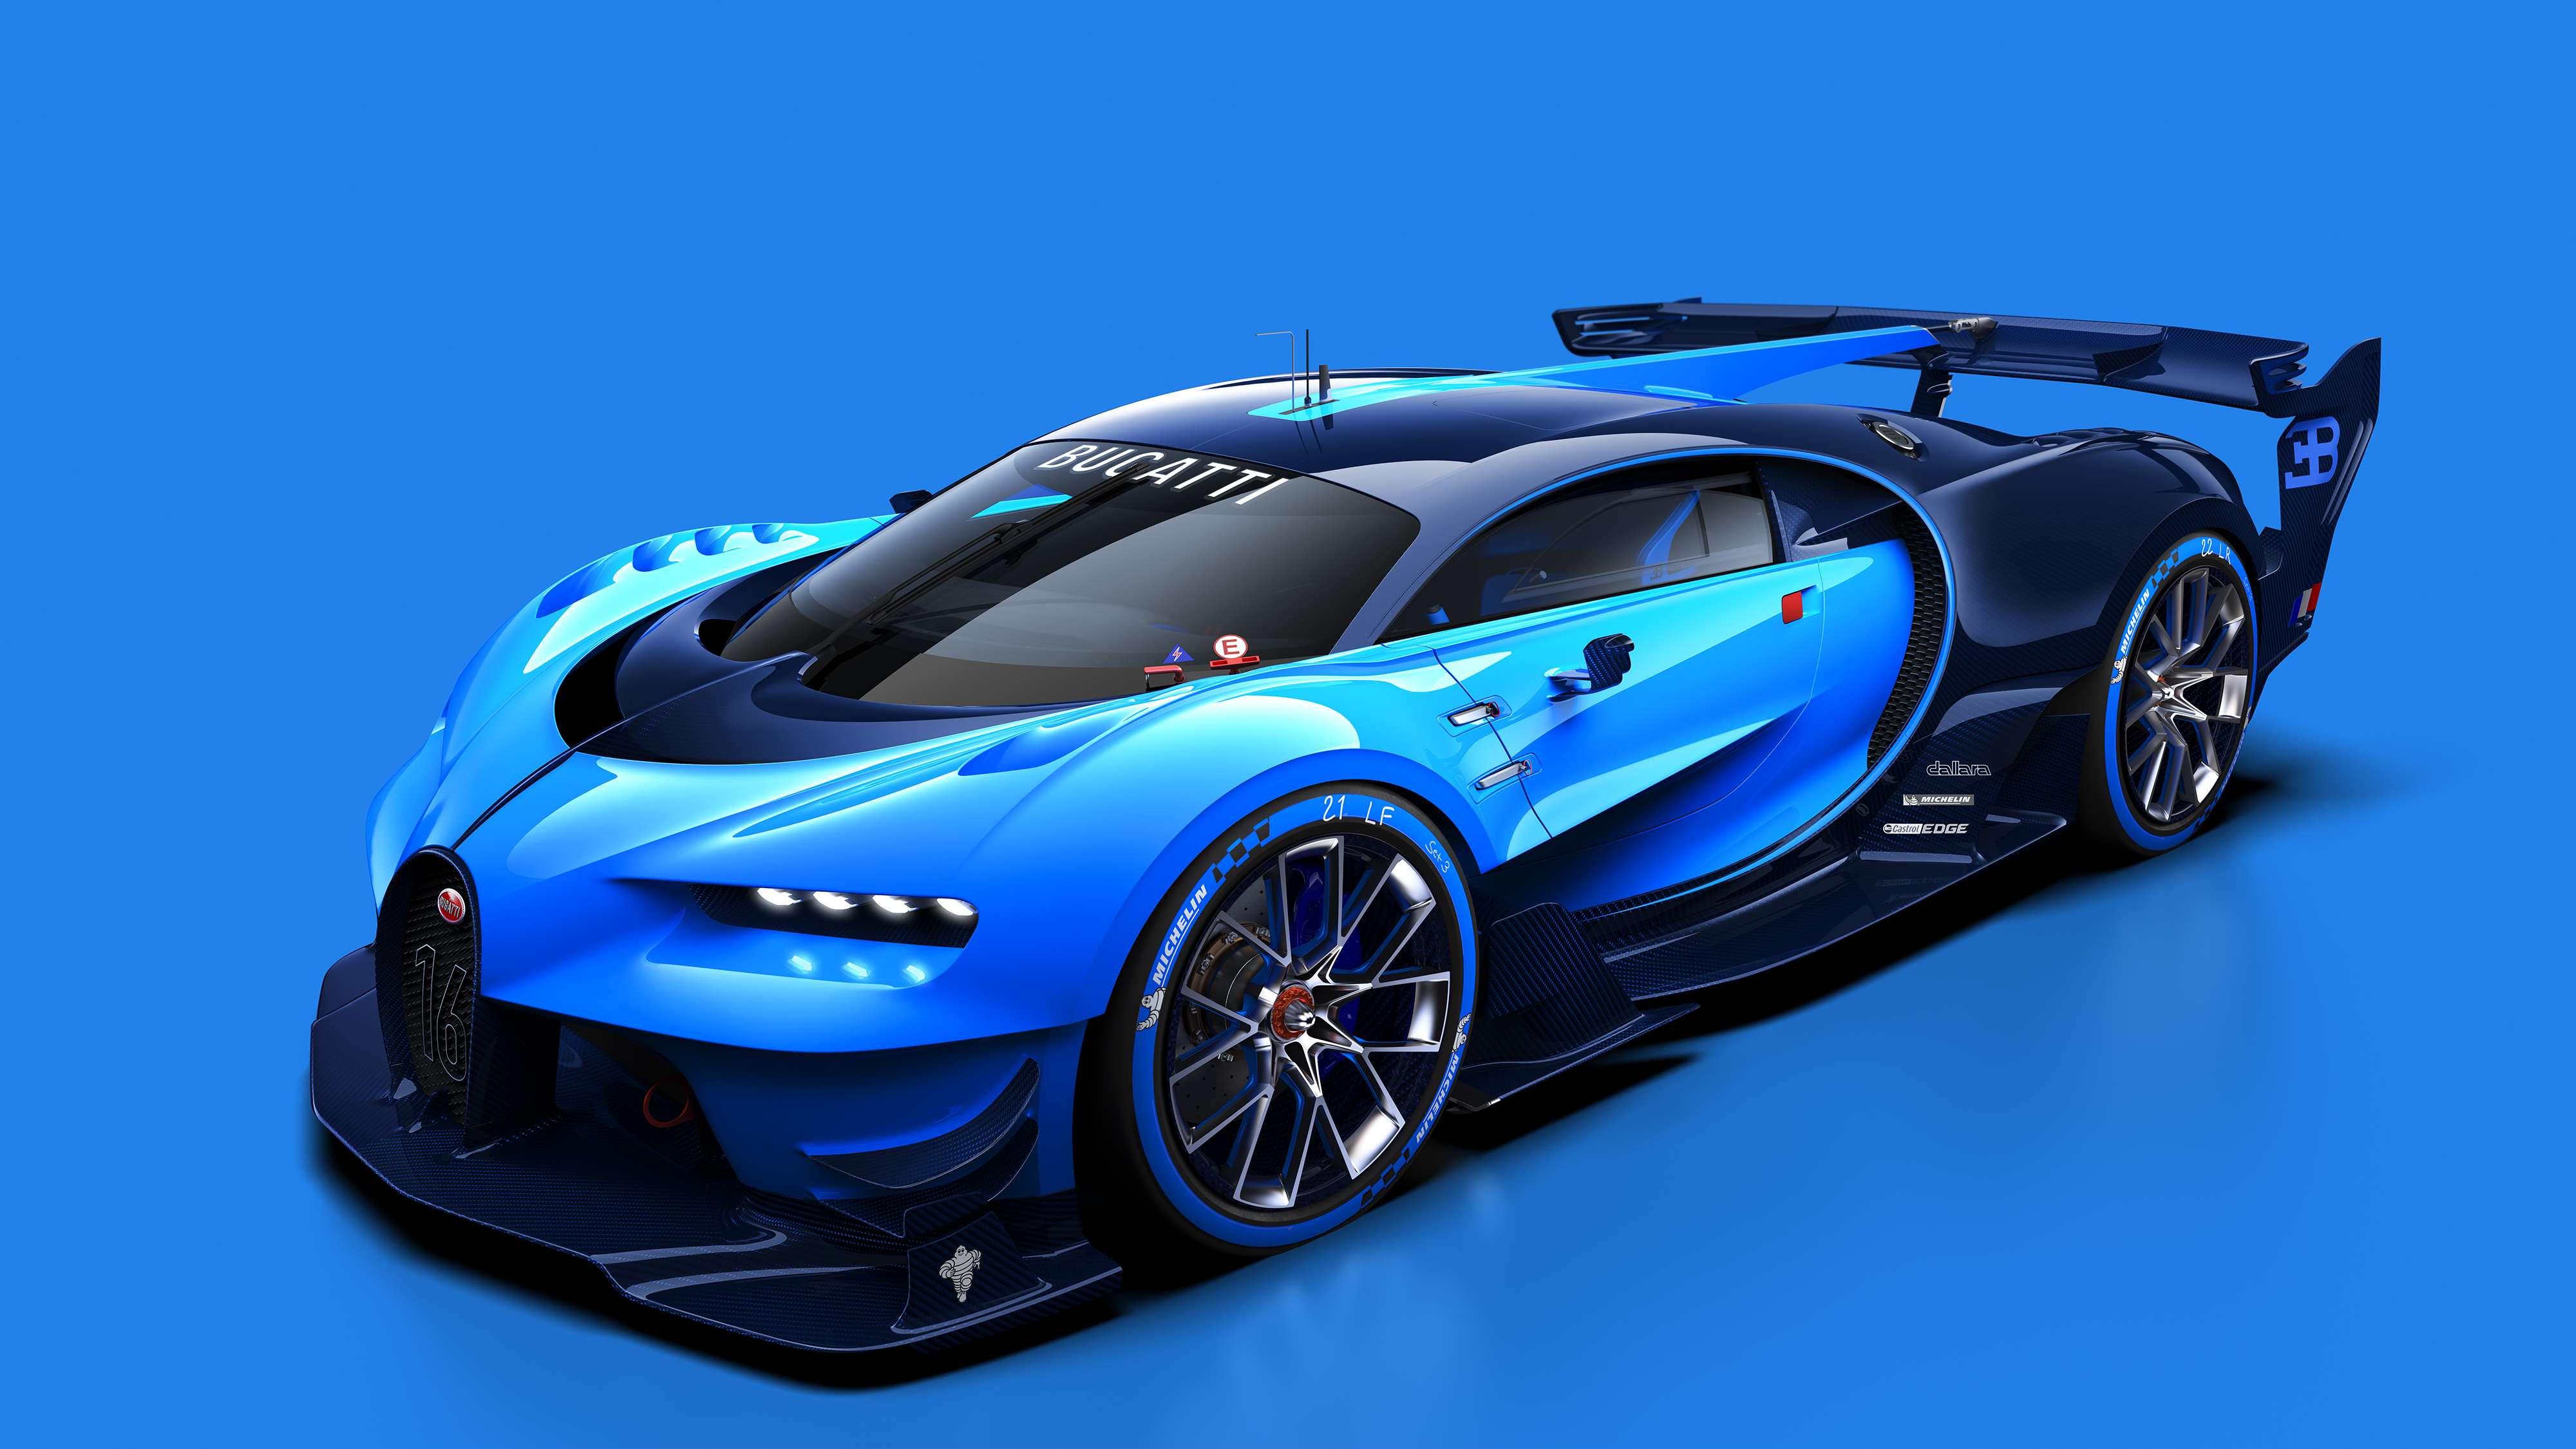 Gt Vision Bugatti on 2017 kia gt, 2017 nissan gt, 2017 shelby mustang gt, 2017 ford gt, 2017 bentley gt,